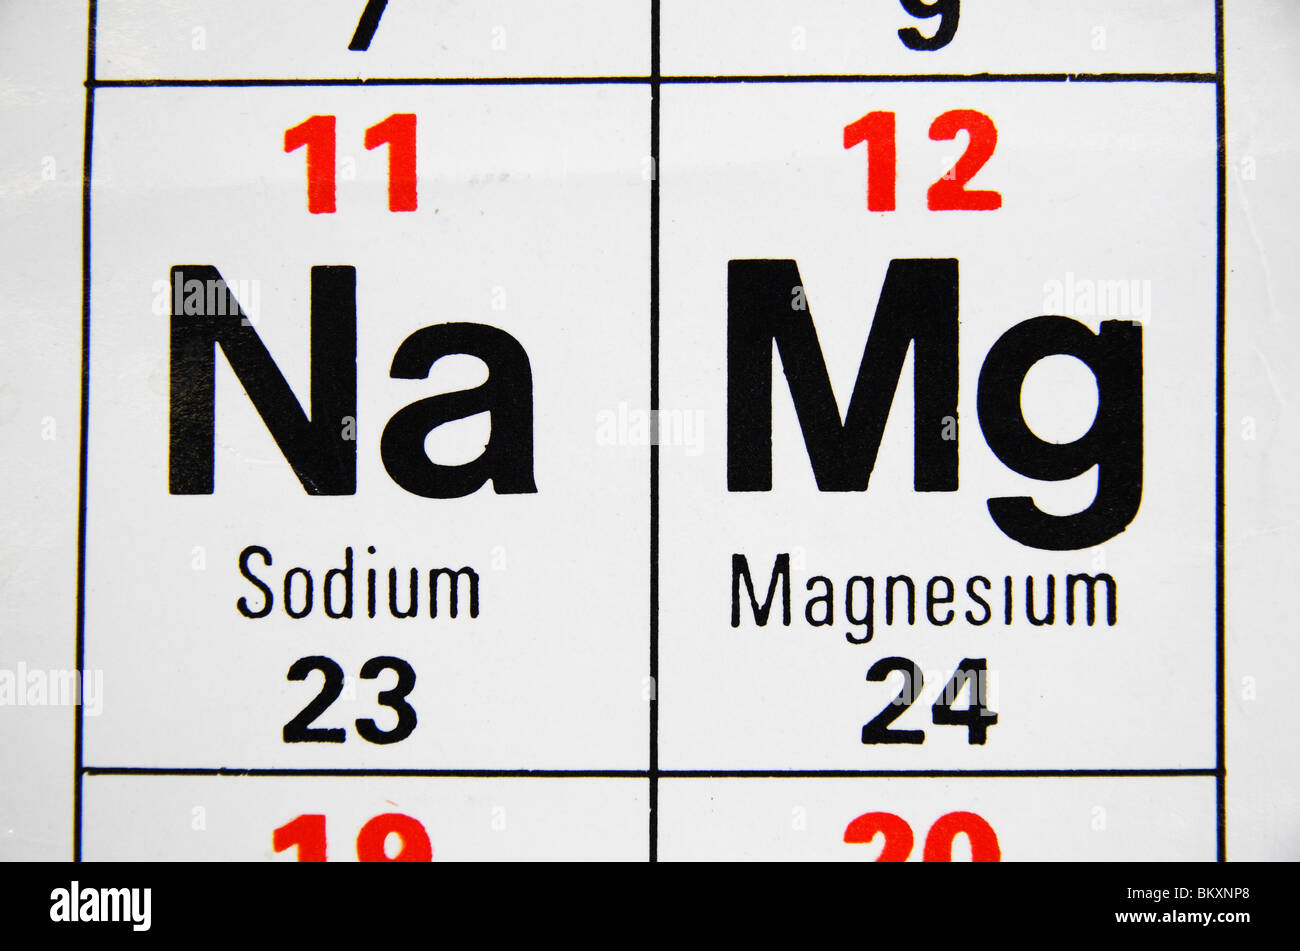 Close Up View Of A Uk High School Periodic Table Focusing On Sodium